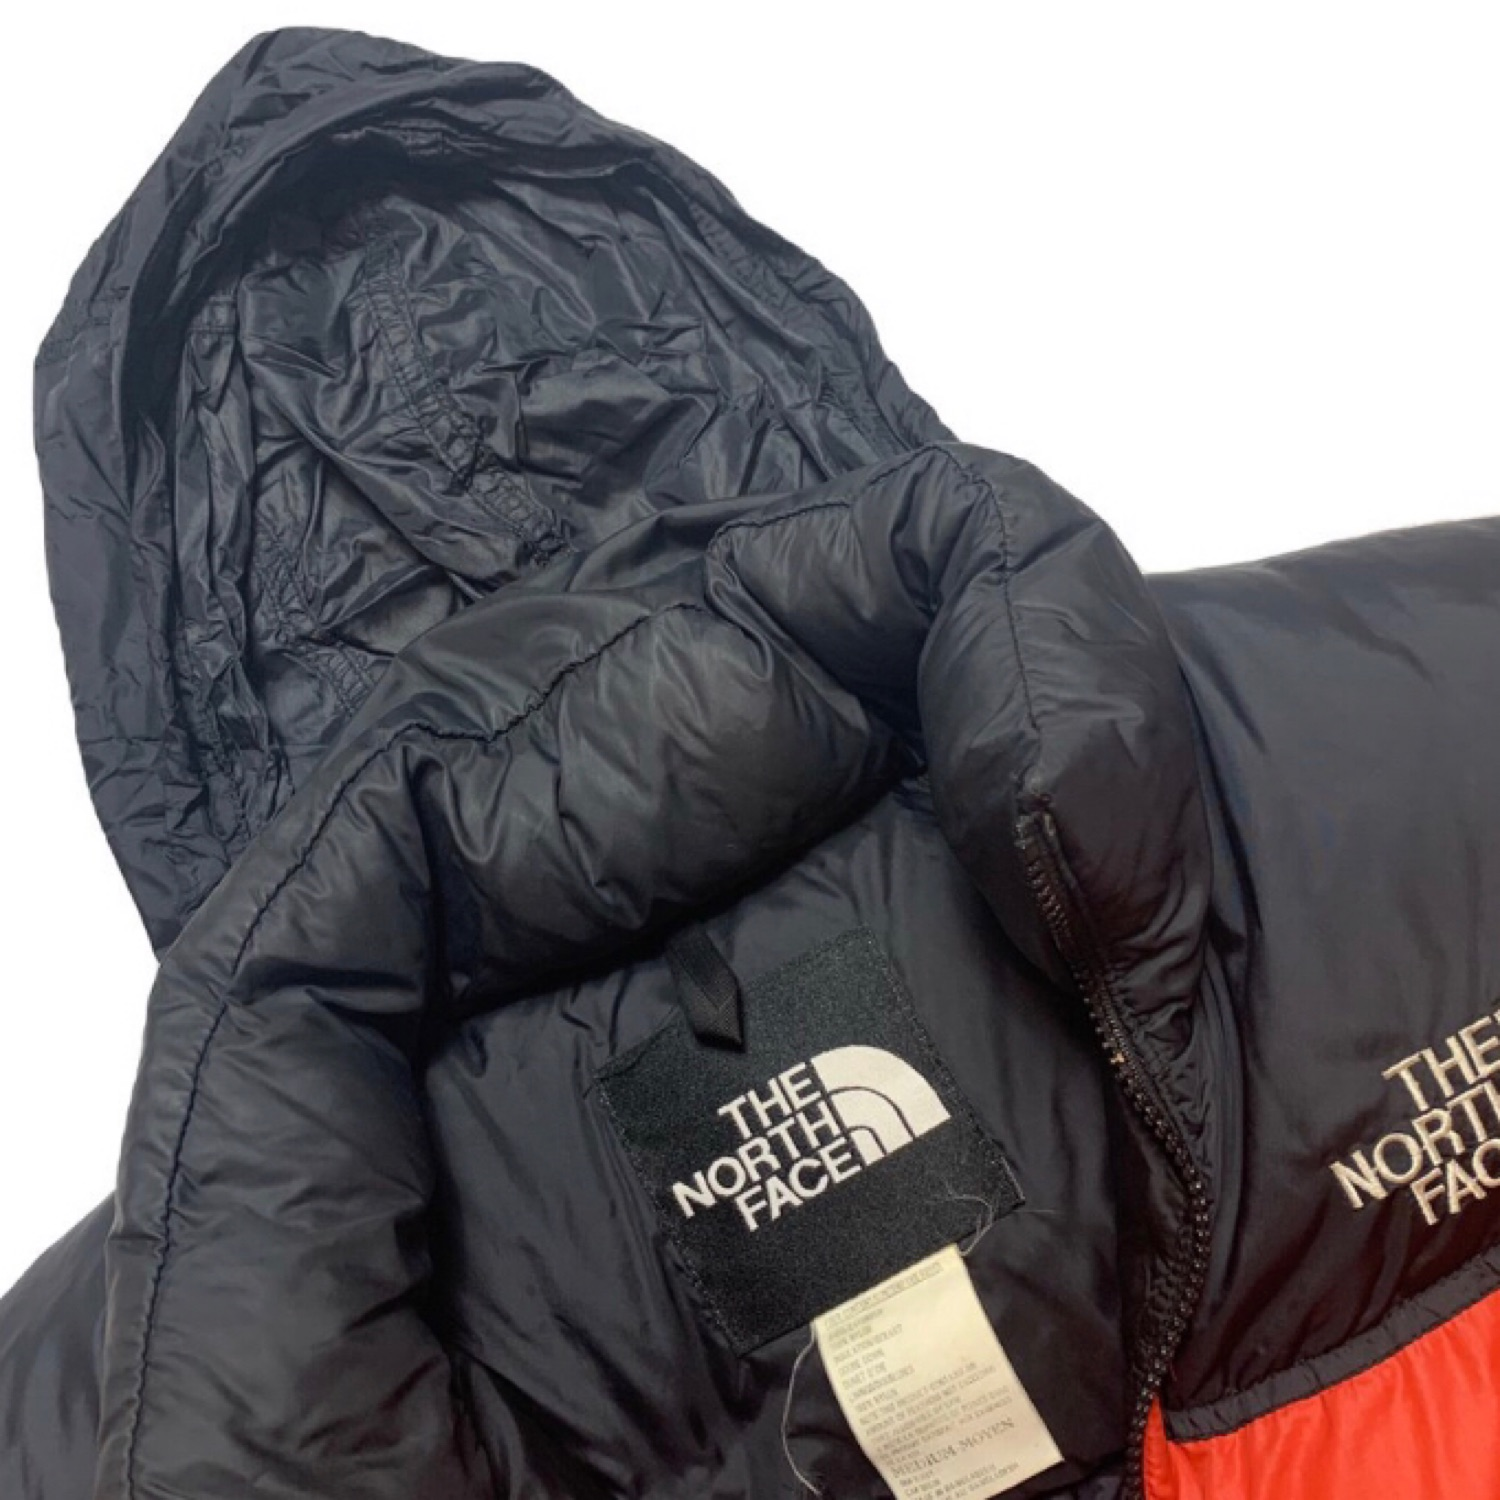 Red North Face Puffer Jacket - Vintage Nuptse